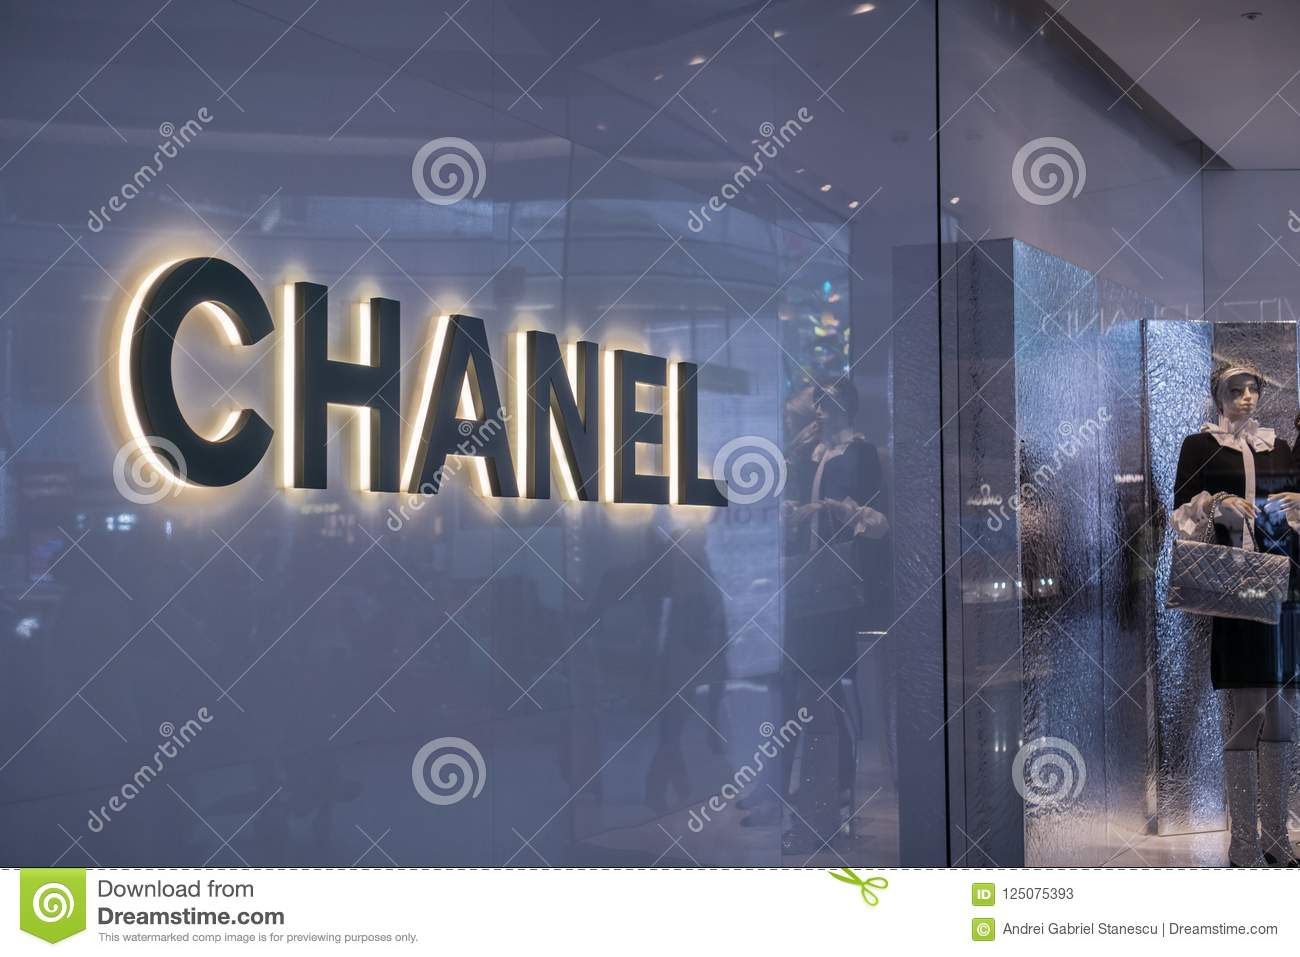 1089f0a4 Chanel logo editorial stock photo. Image of britain - 125075393